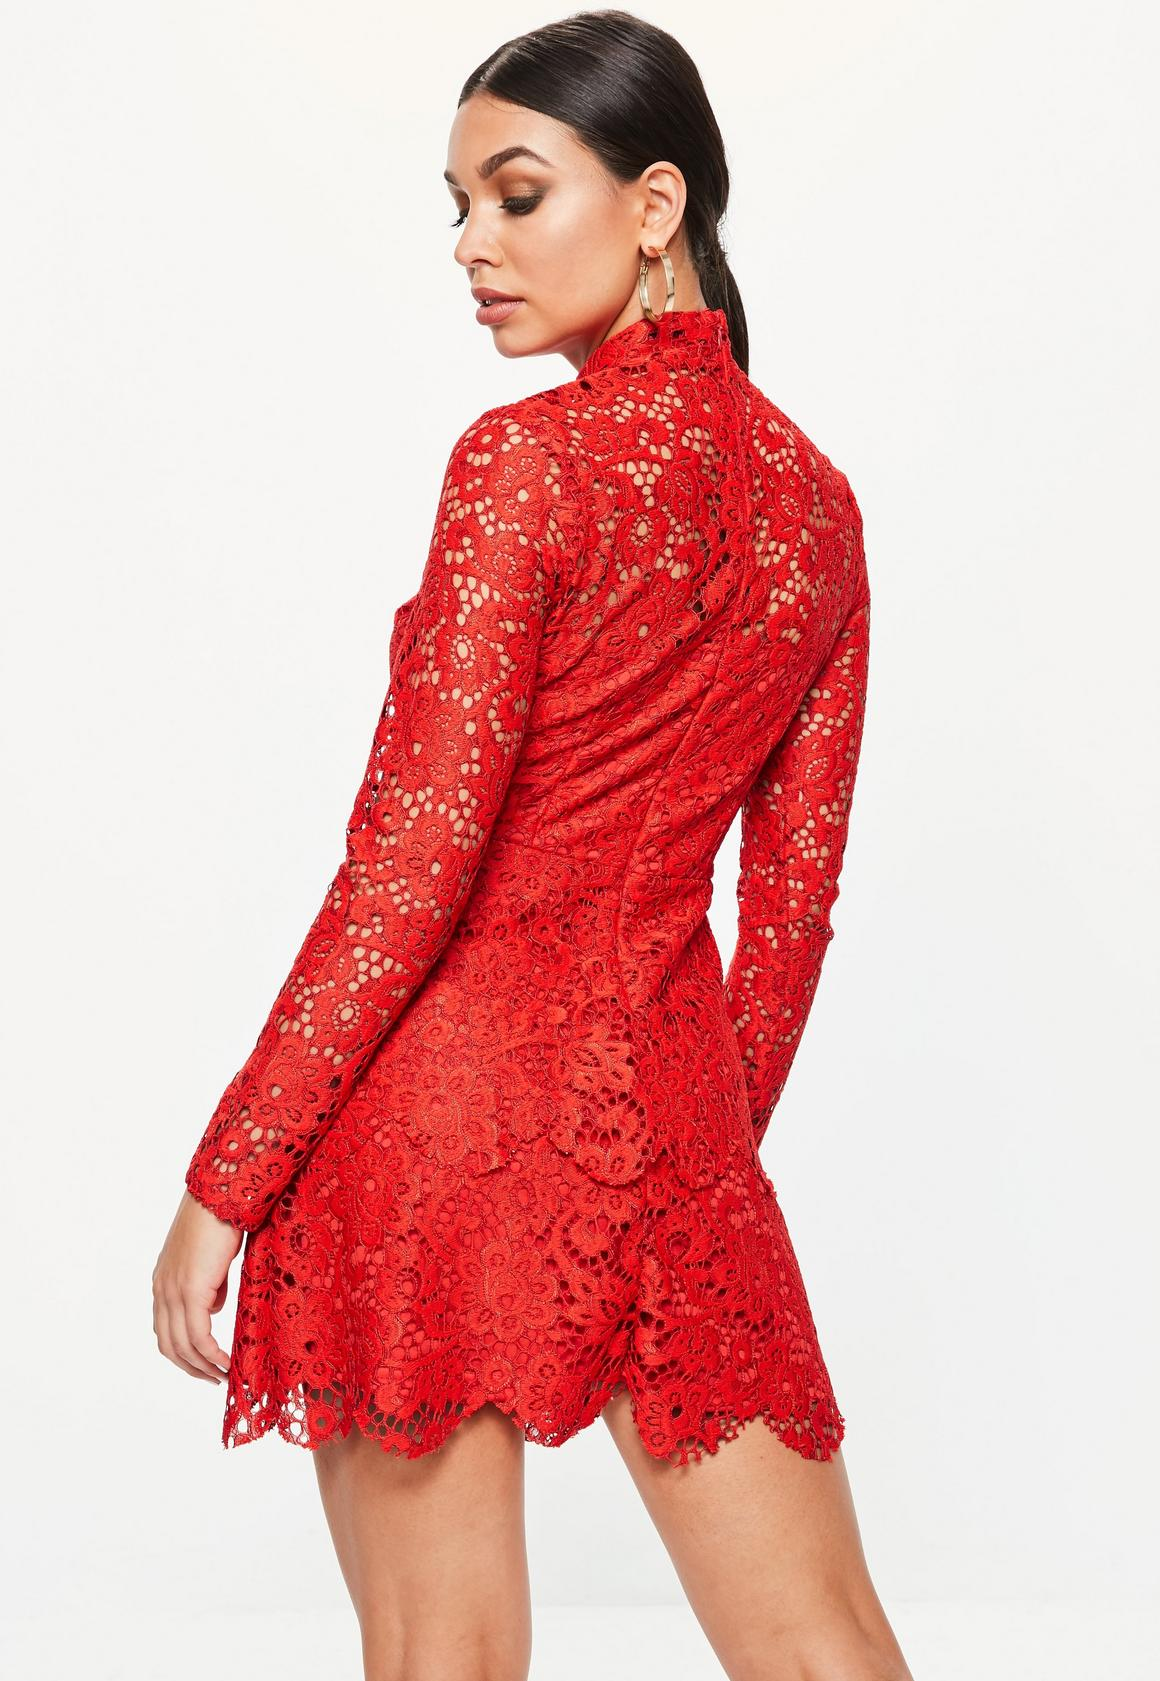 c47907bfca Missguided - Red Lace High Neck Frill Layered Mini Dress